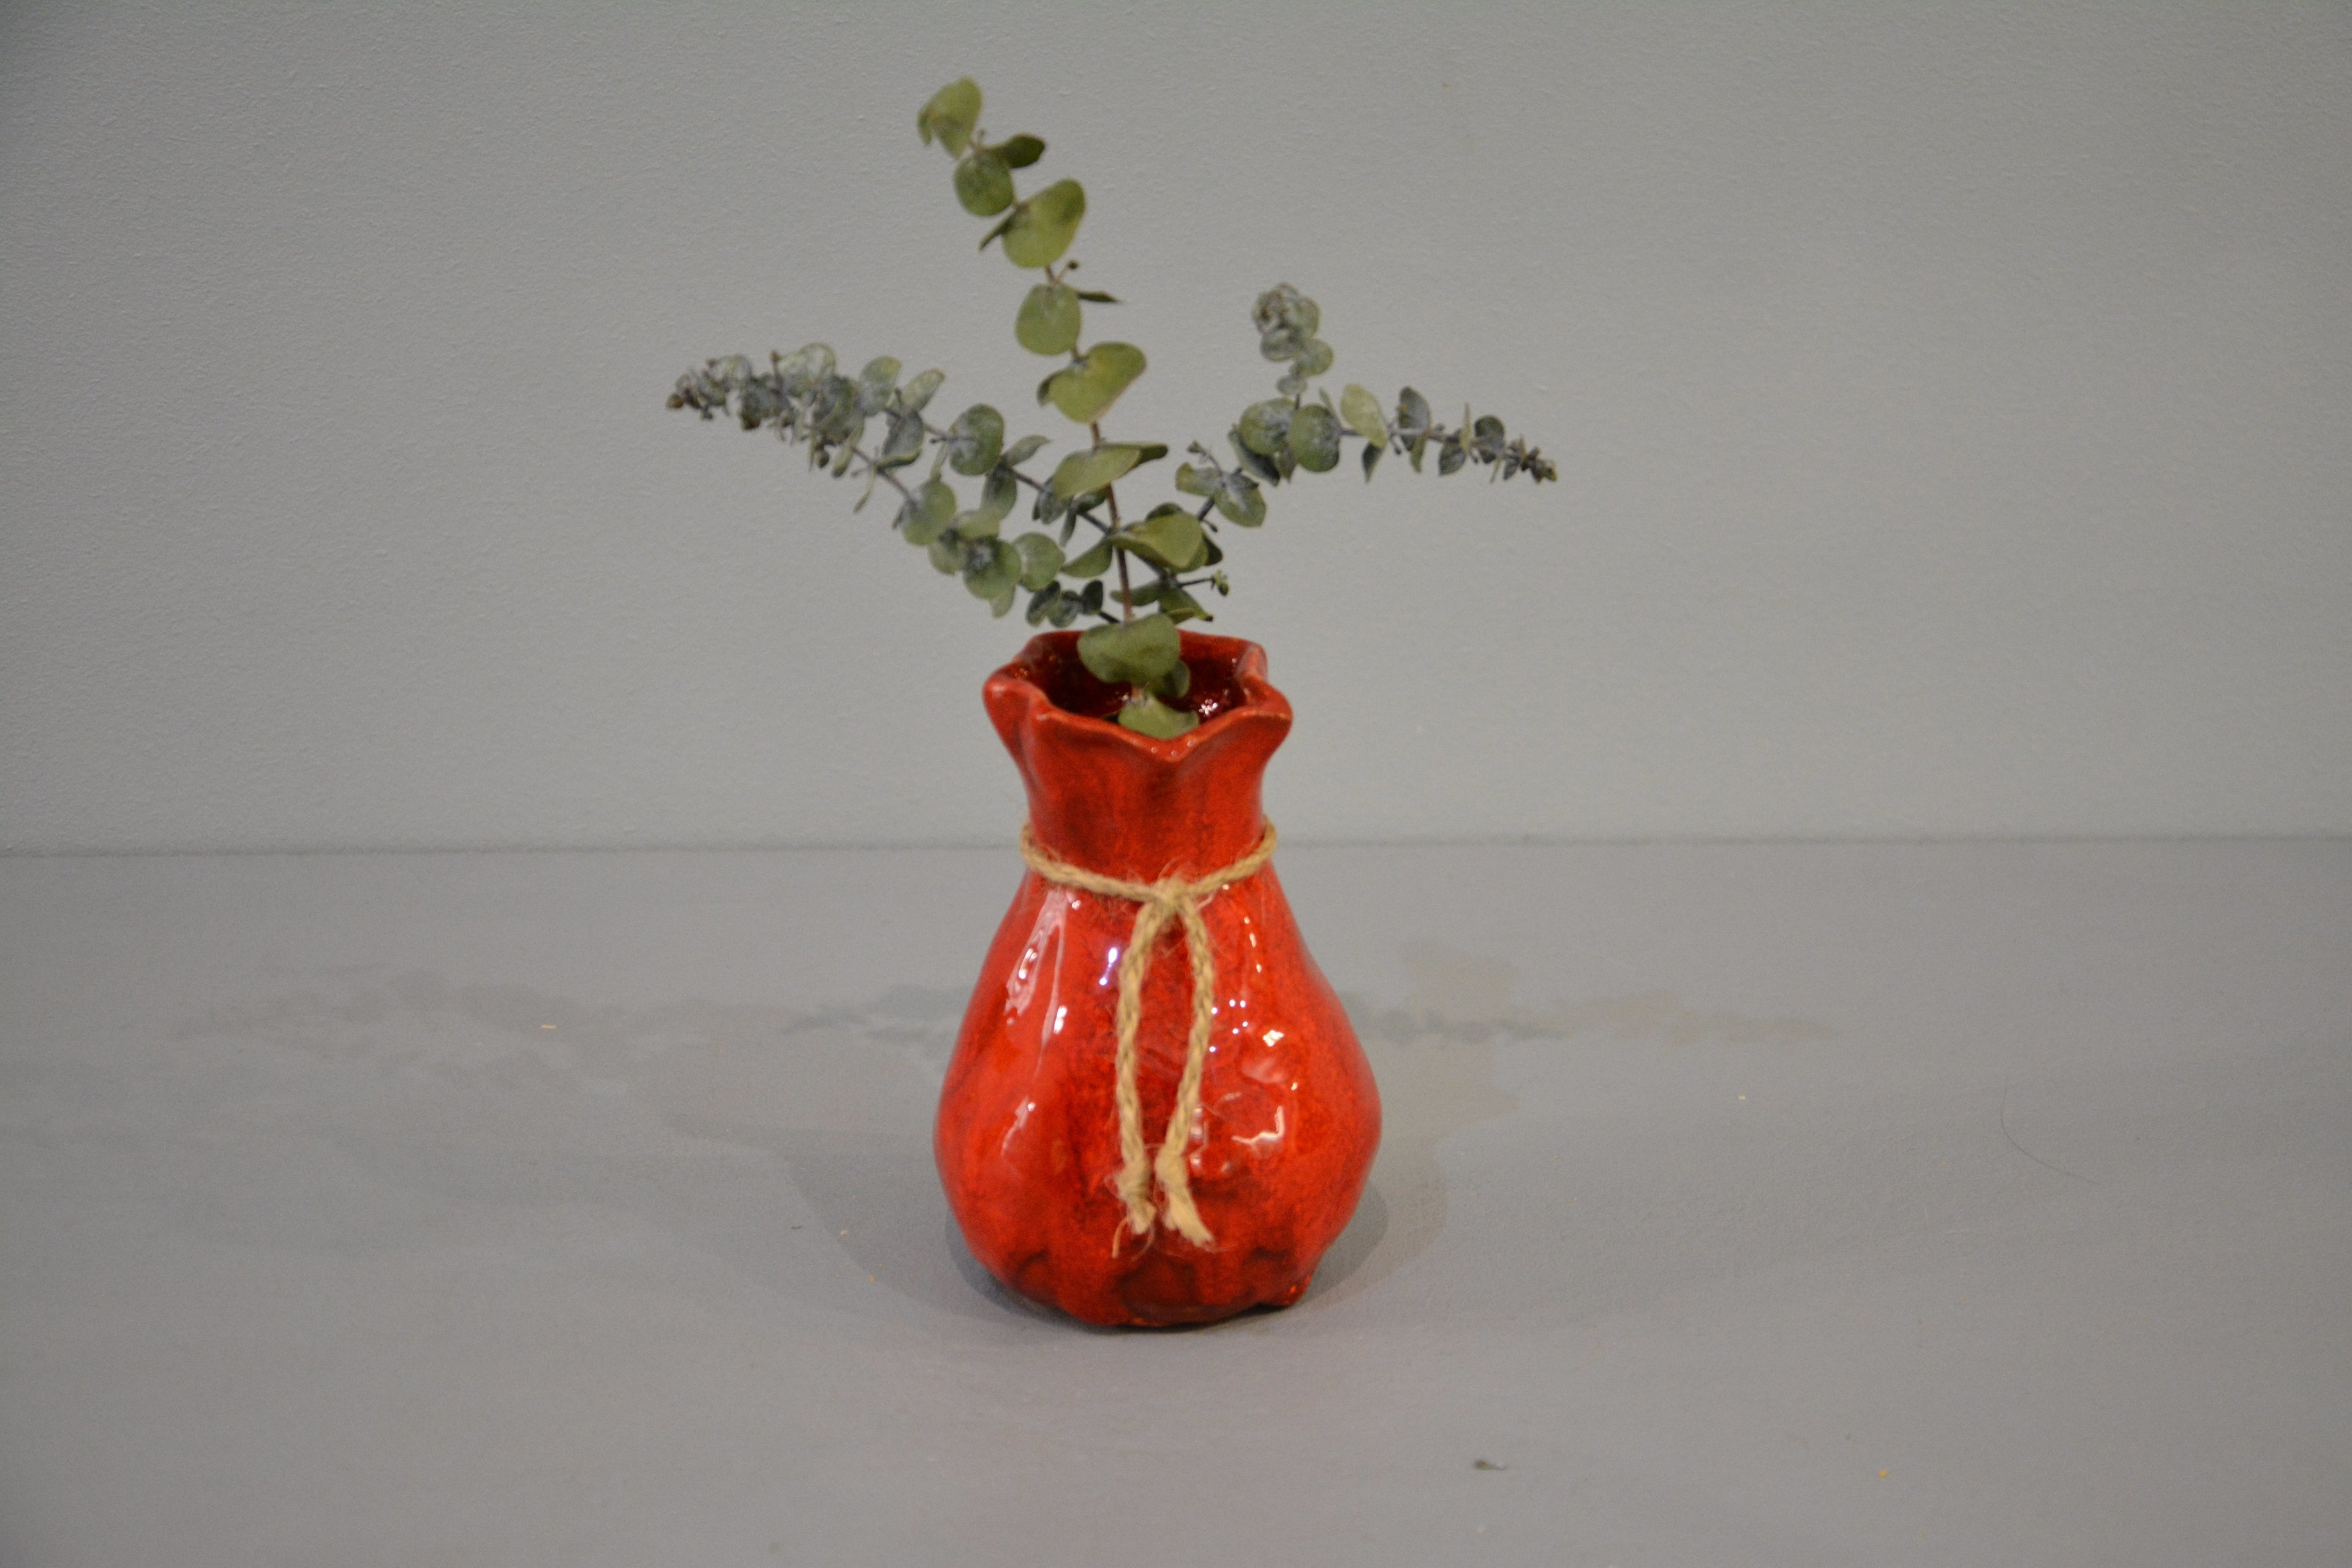 Interior vase «Red Bagful», height - 12 cm, color - red. Photo 1430.